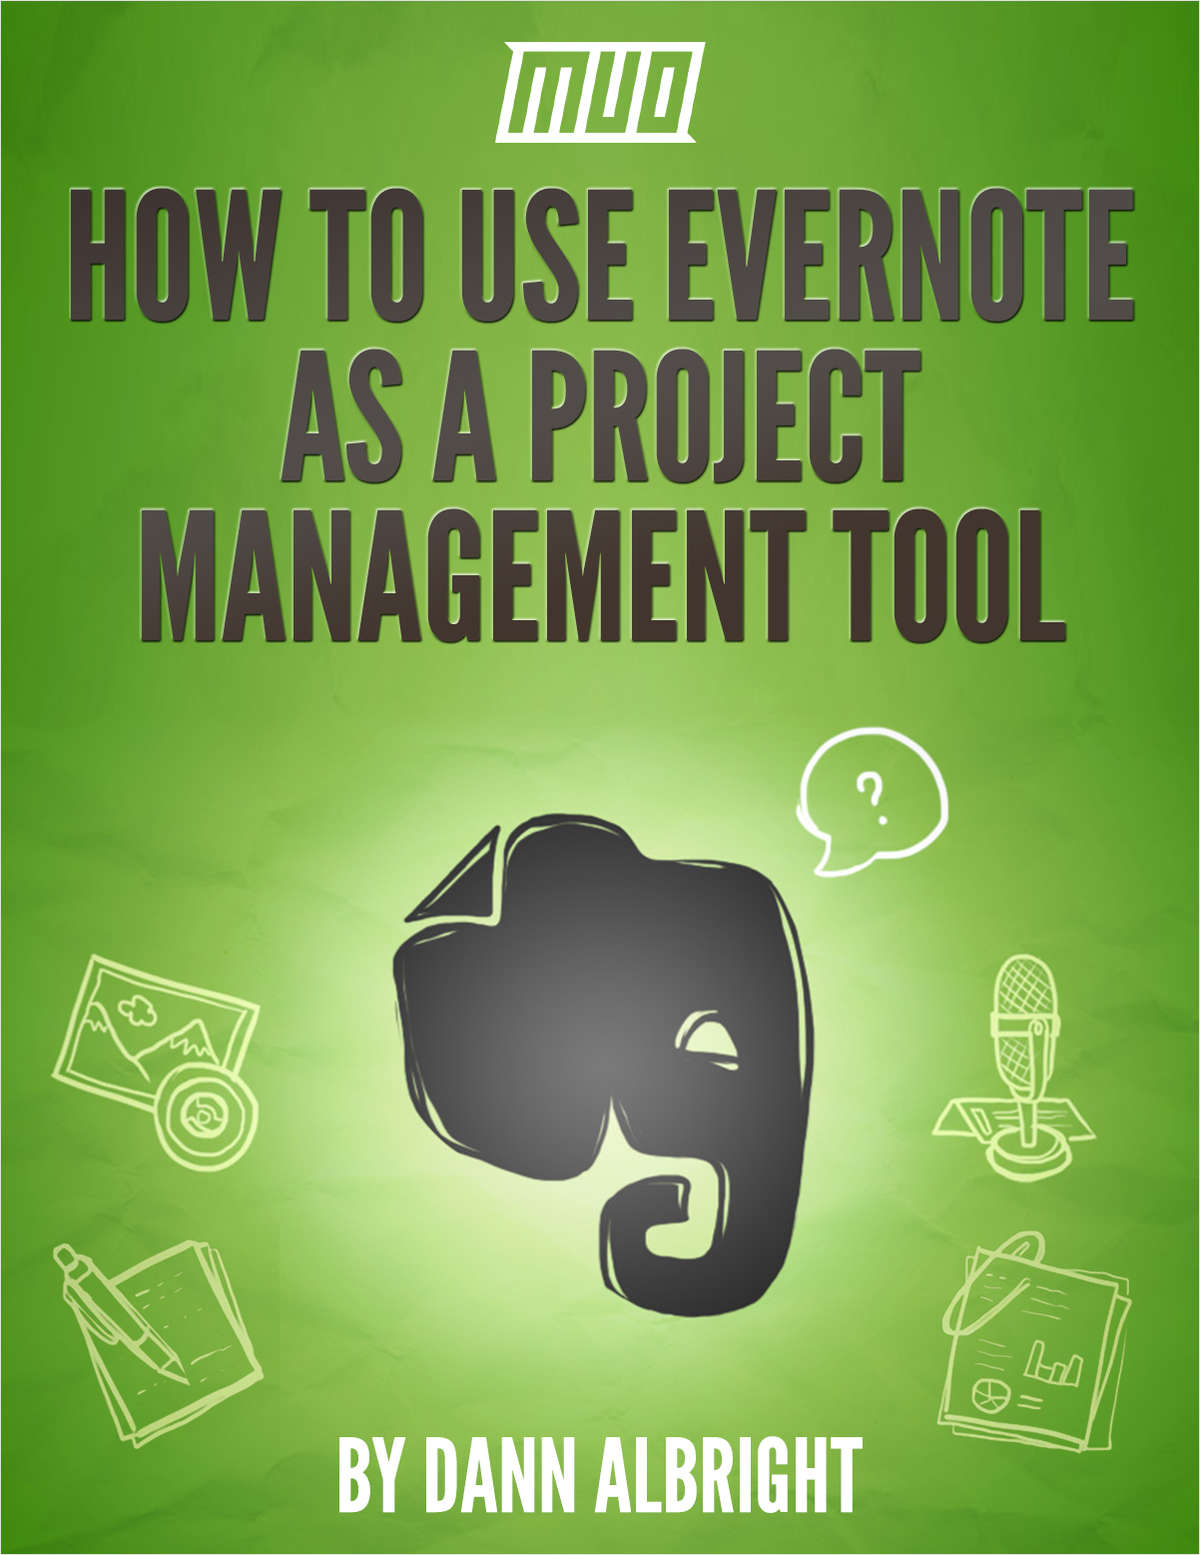 How to Use Evernote as a Project Management Tool